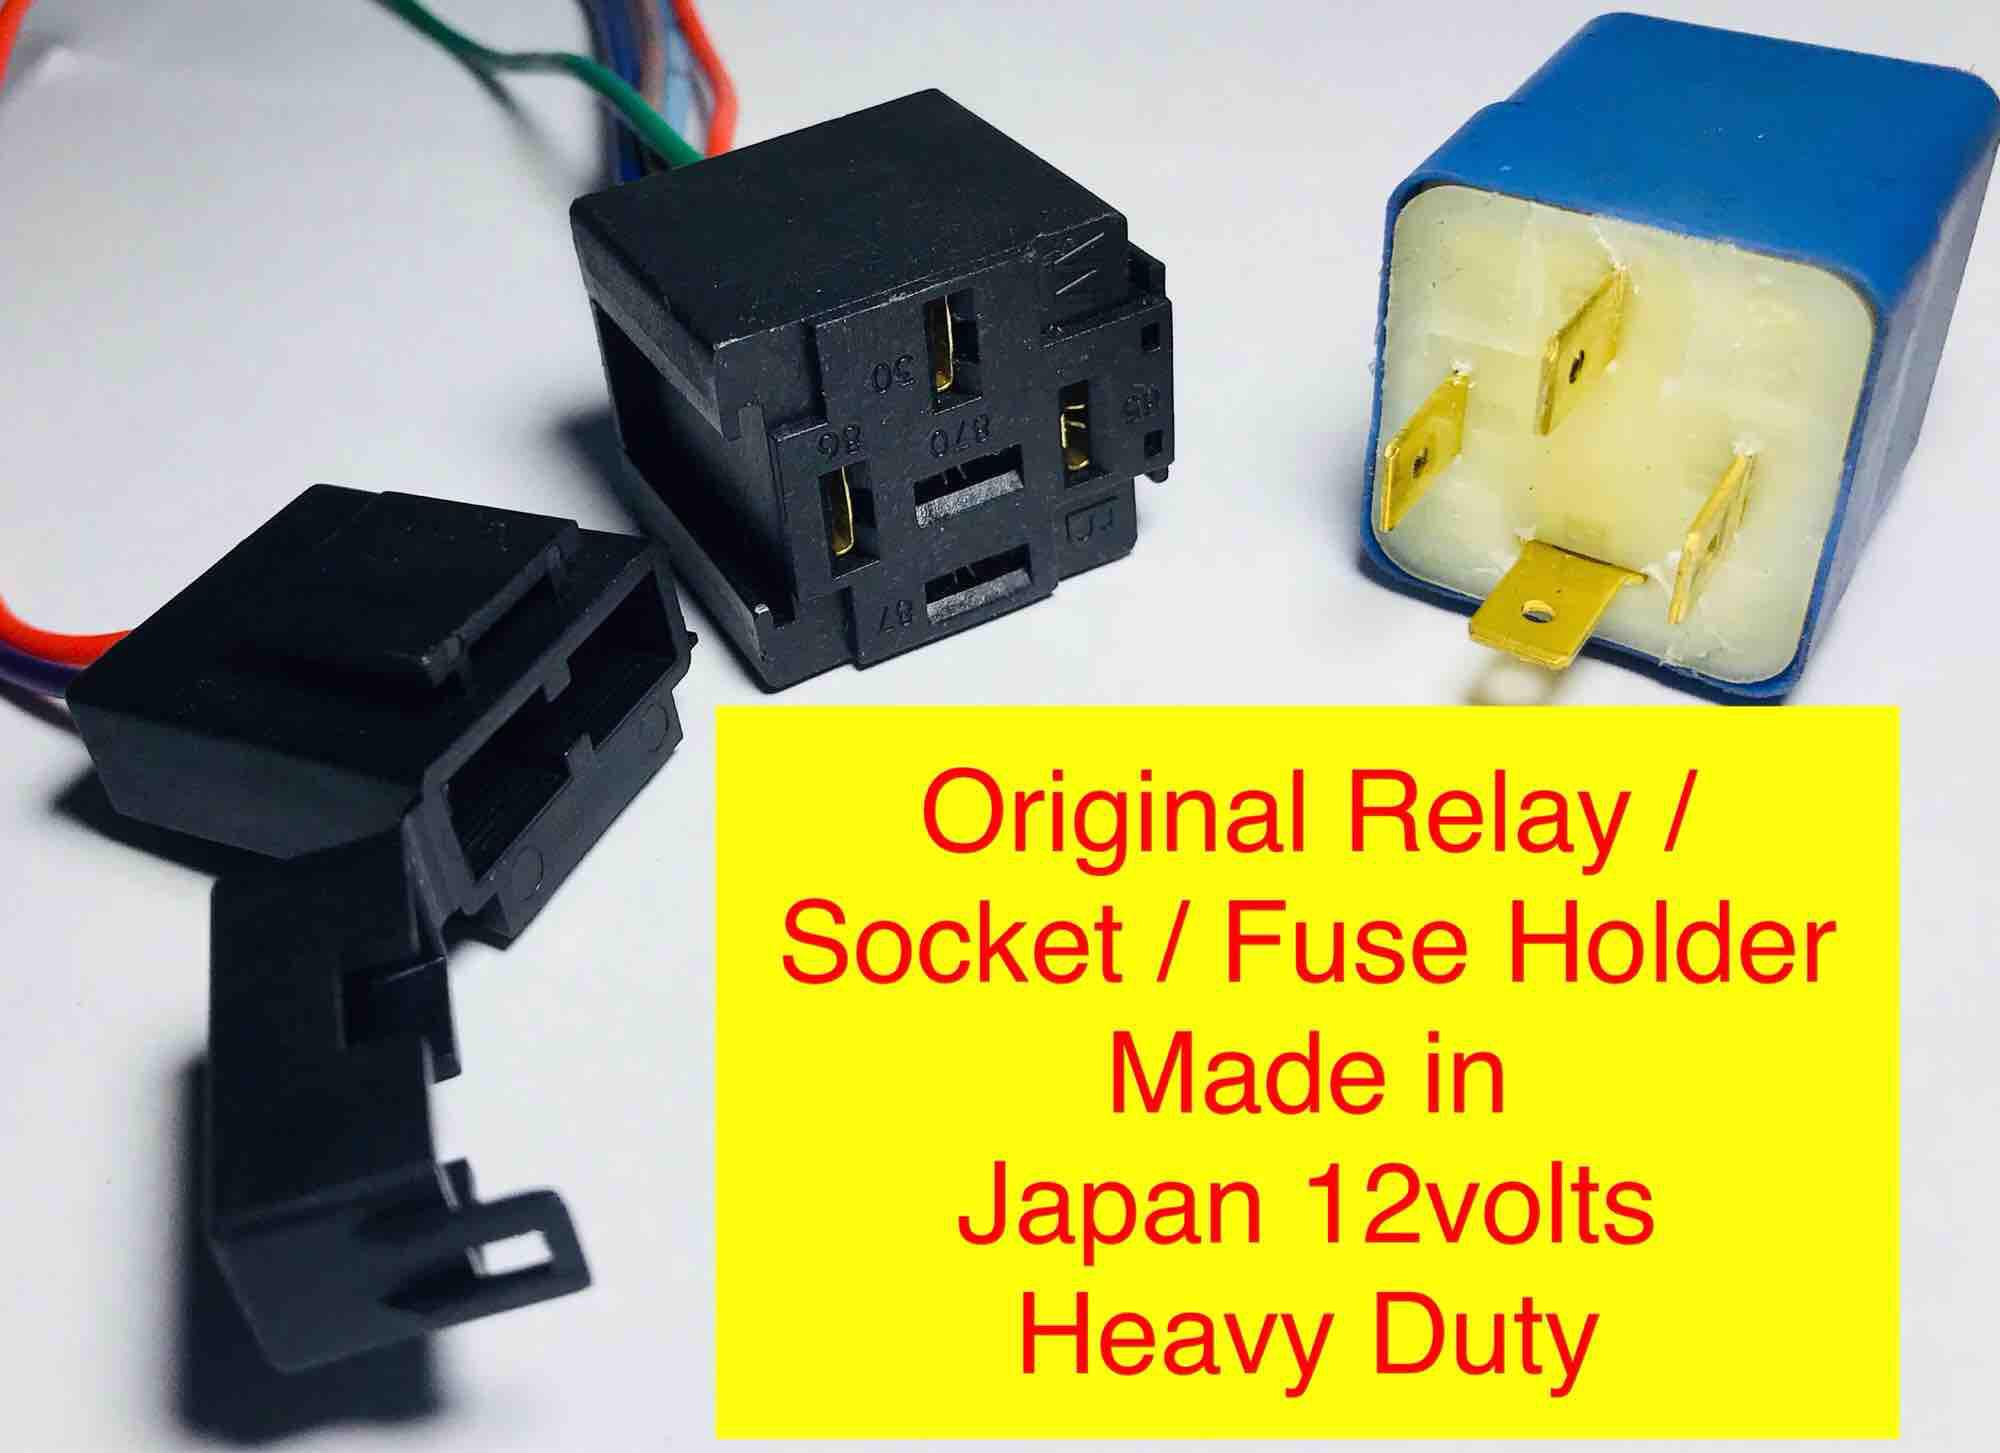 Car Relays For Sale Automotive Online Brands Prices Negative Trigger Fog Light Relay Wiring Diagram Auto 12v Socket Fuse Holder Like Bosch Original Universal